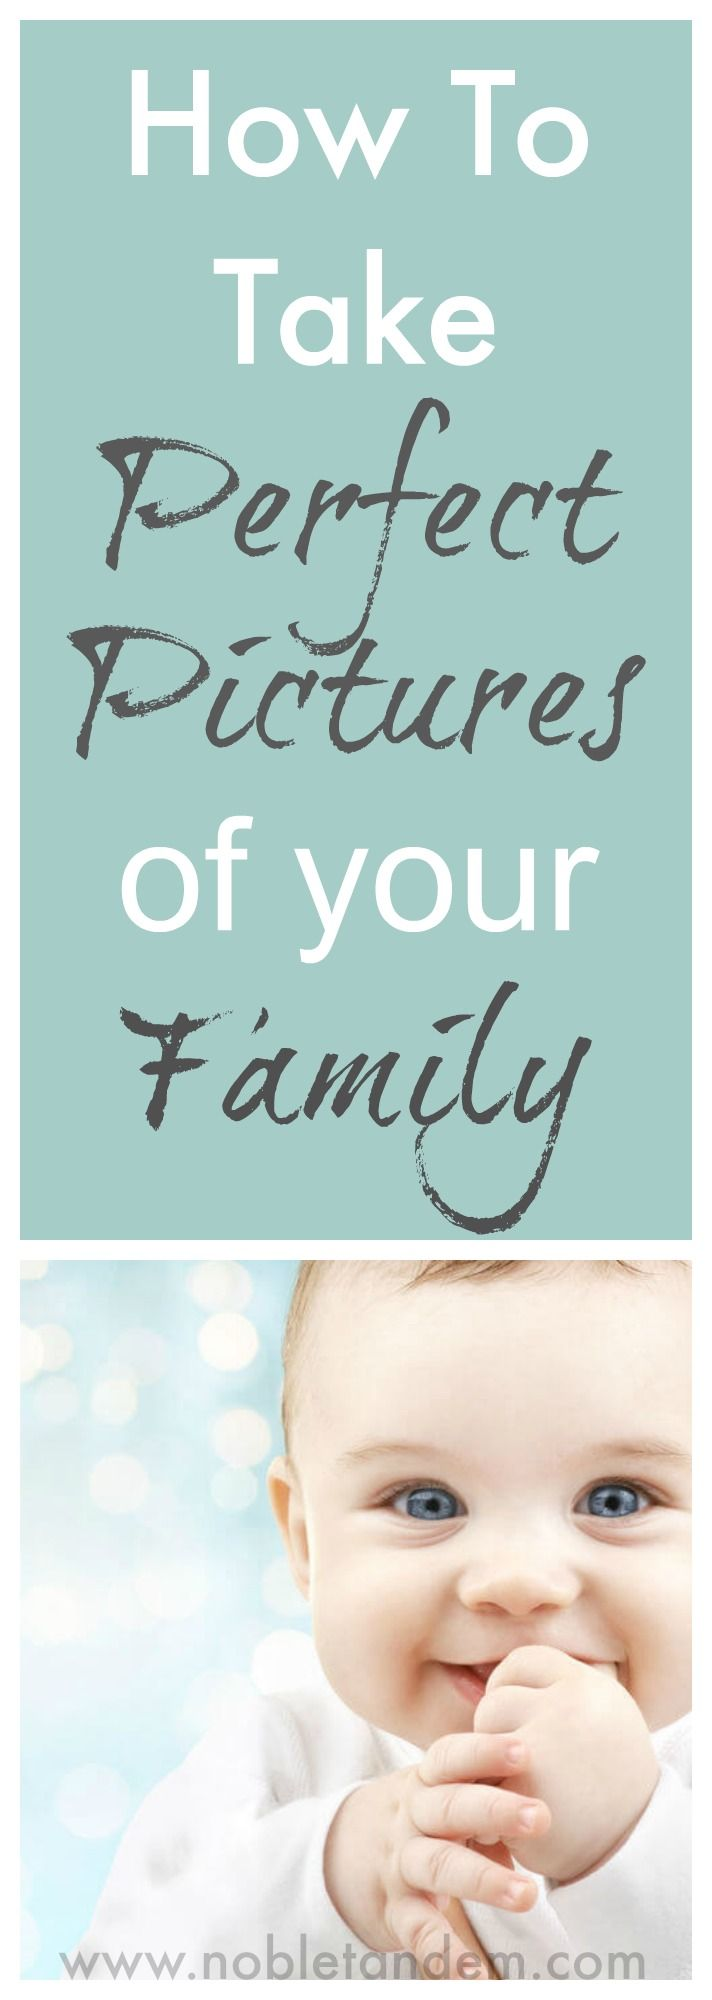 All the tips you need to take awesome pictures of your family ! Find out more here : http://www.nobletandem.com/how-to-take-awesome-pictures-of-your-kids-or-family-members/